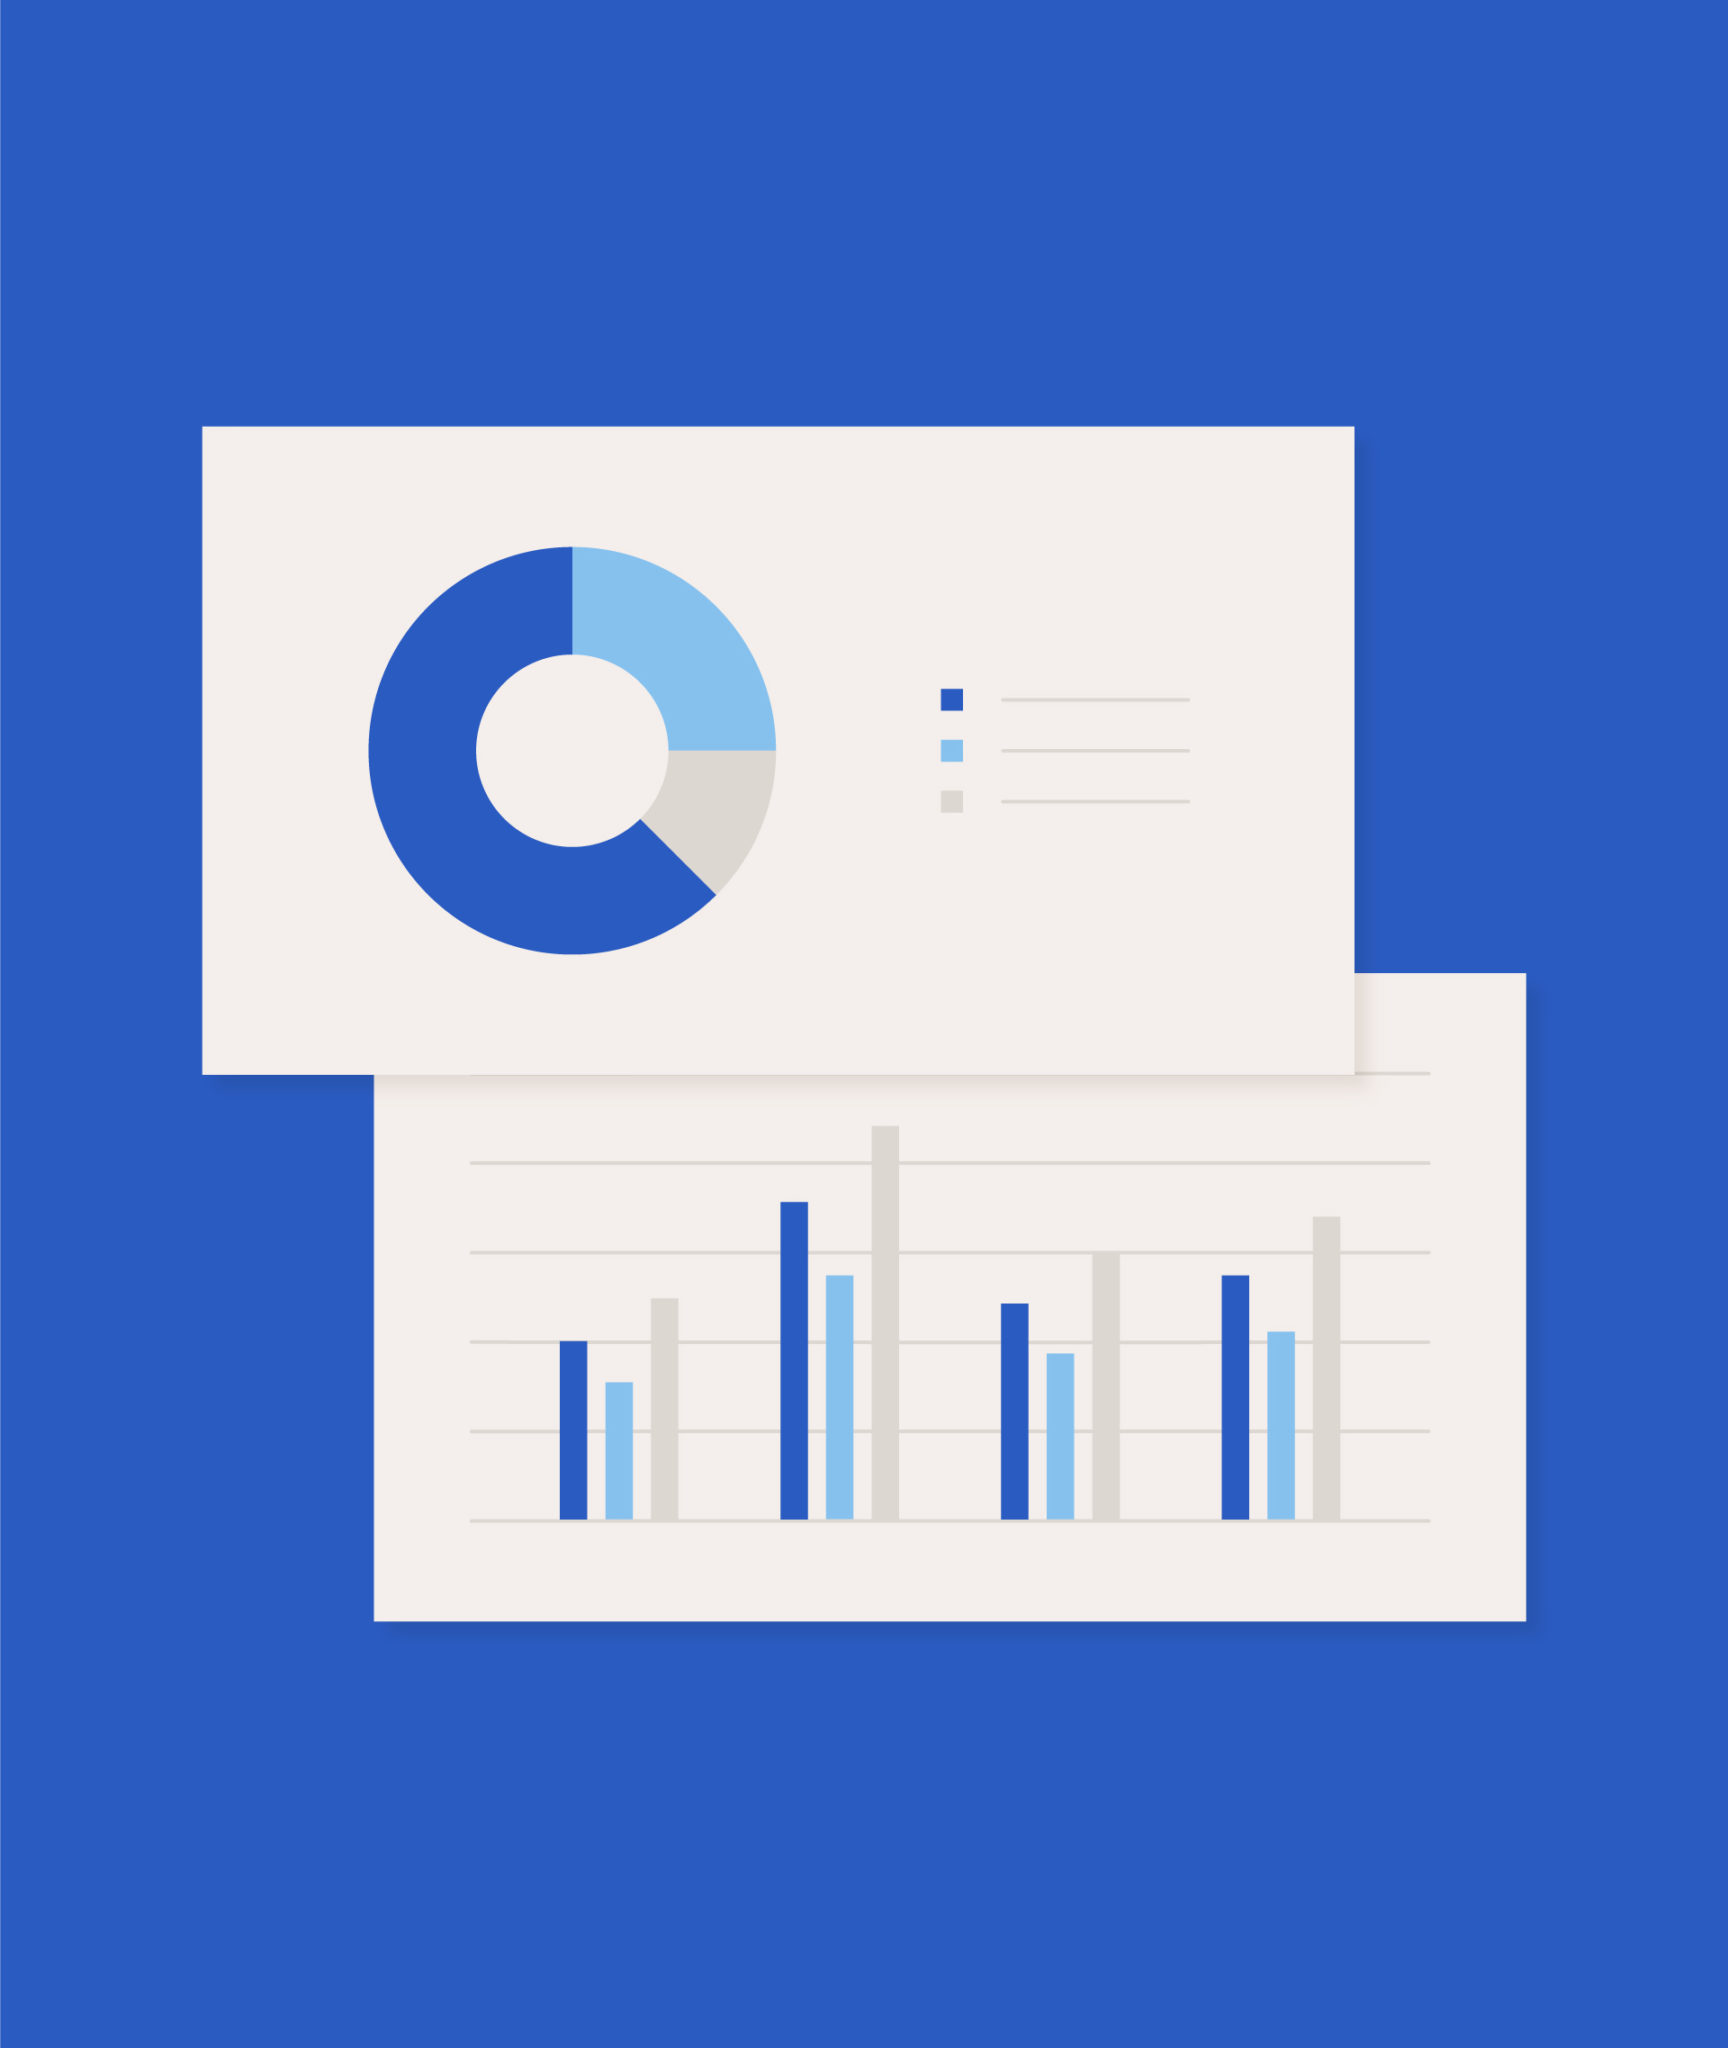 icon of pie chart and bar graphs